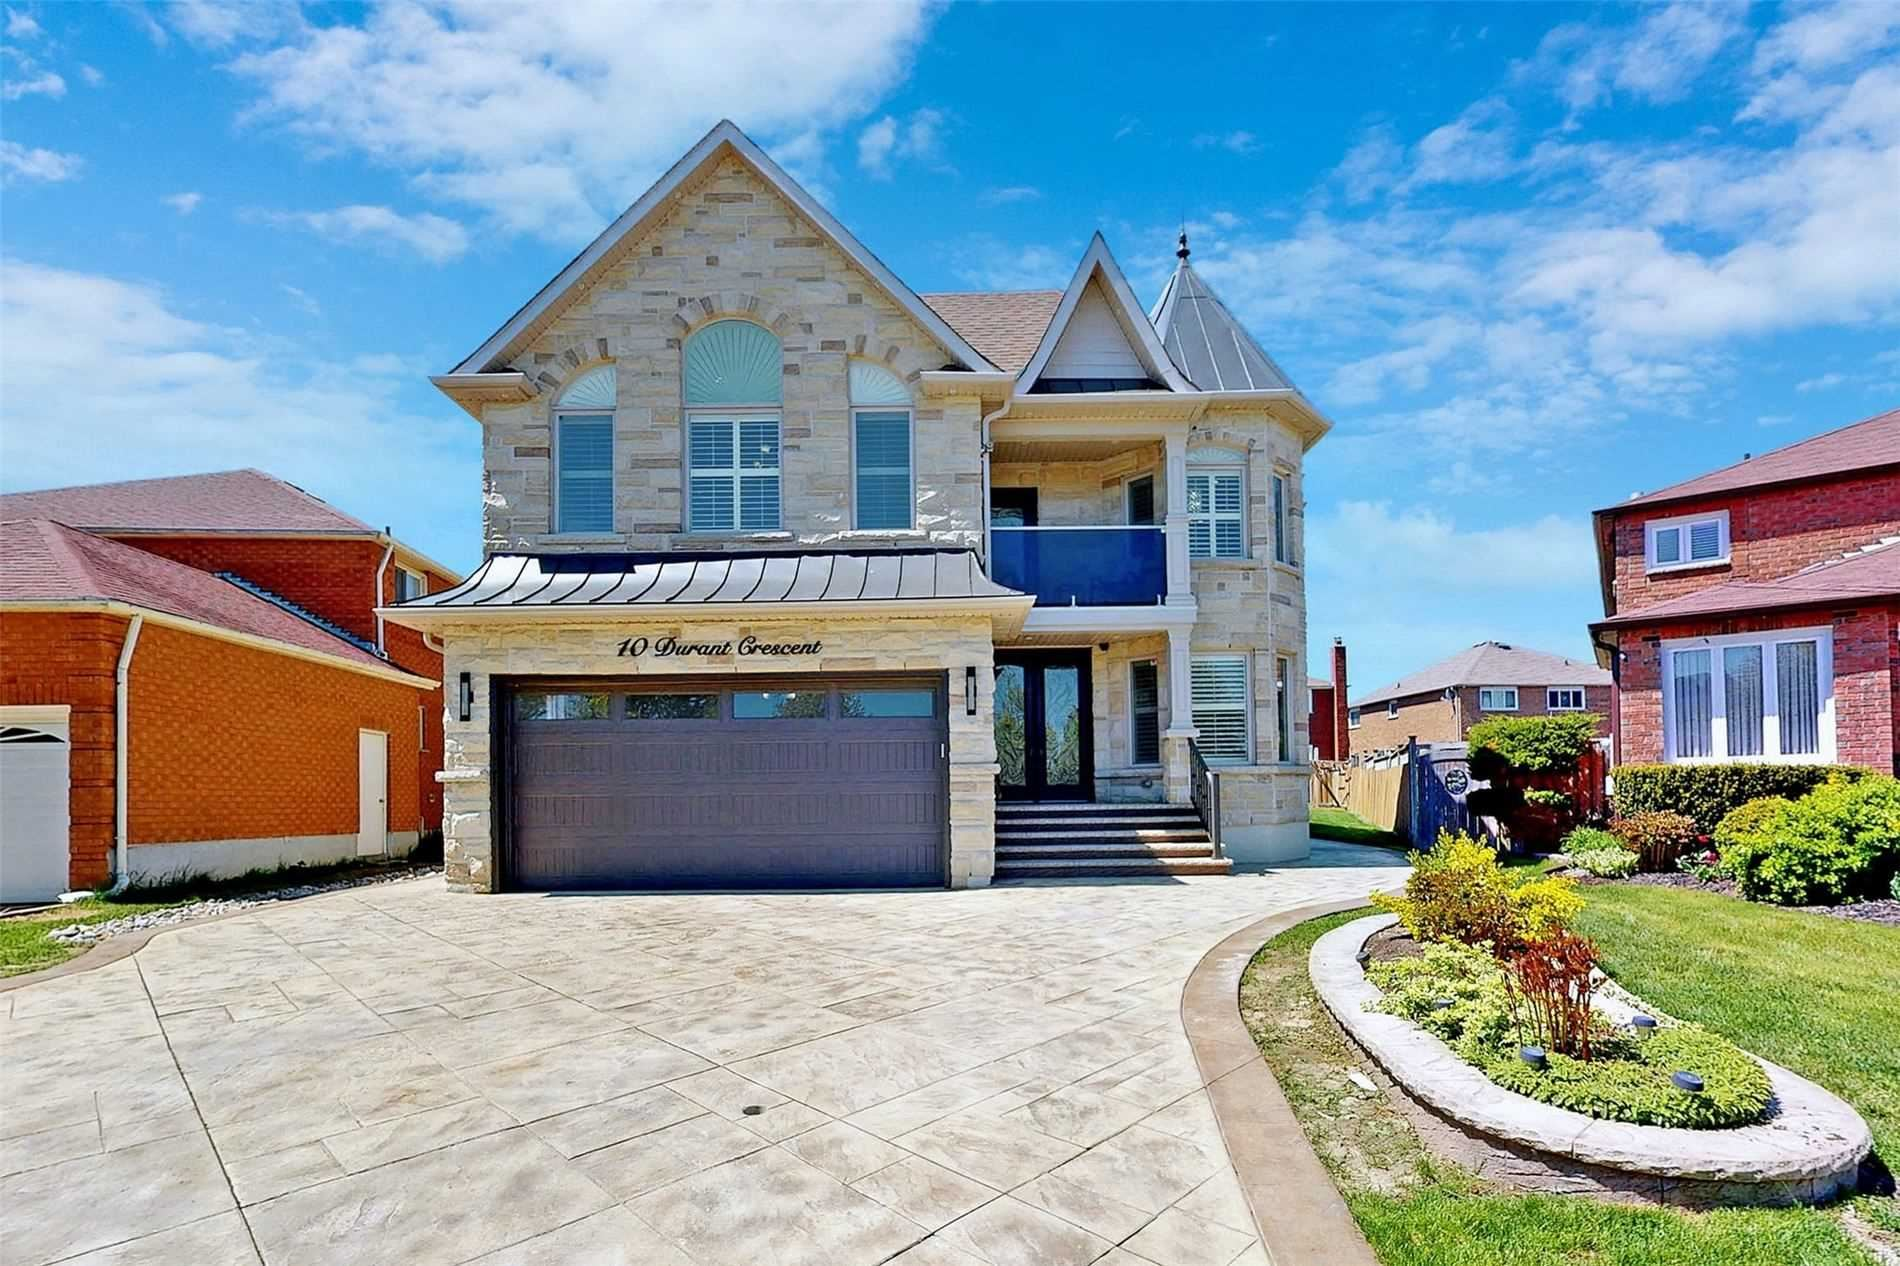 10 Durant Cres, Markham, ON L3S3A2 - MLS#: N5262268